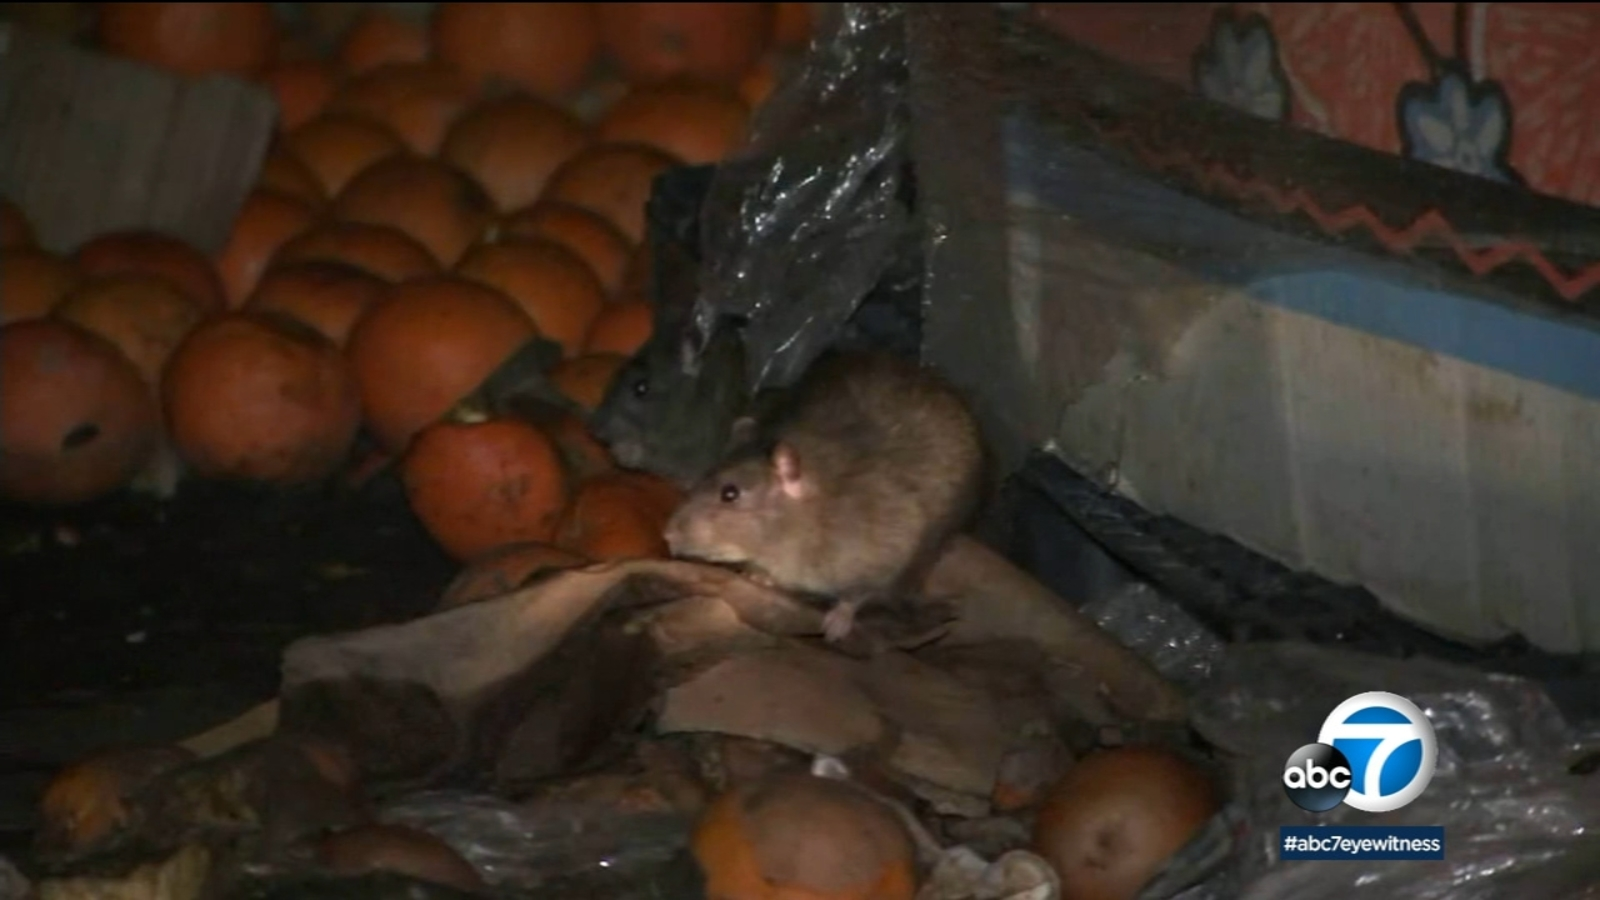 Rats overrunning California and government officials making problem worse, group claims